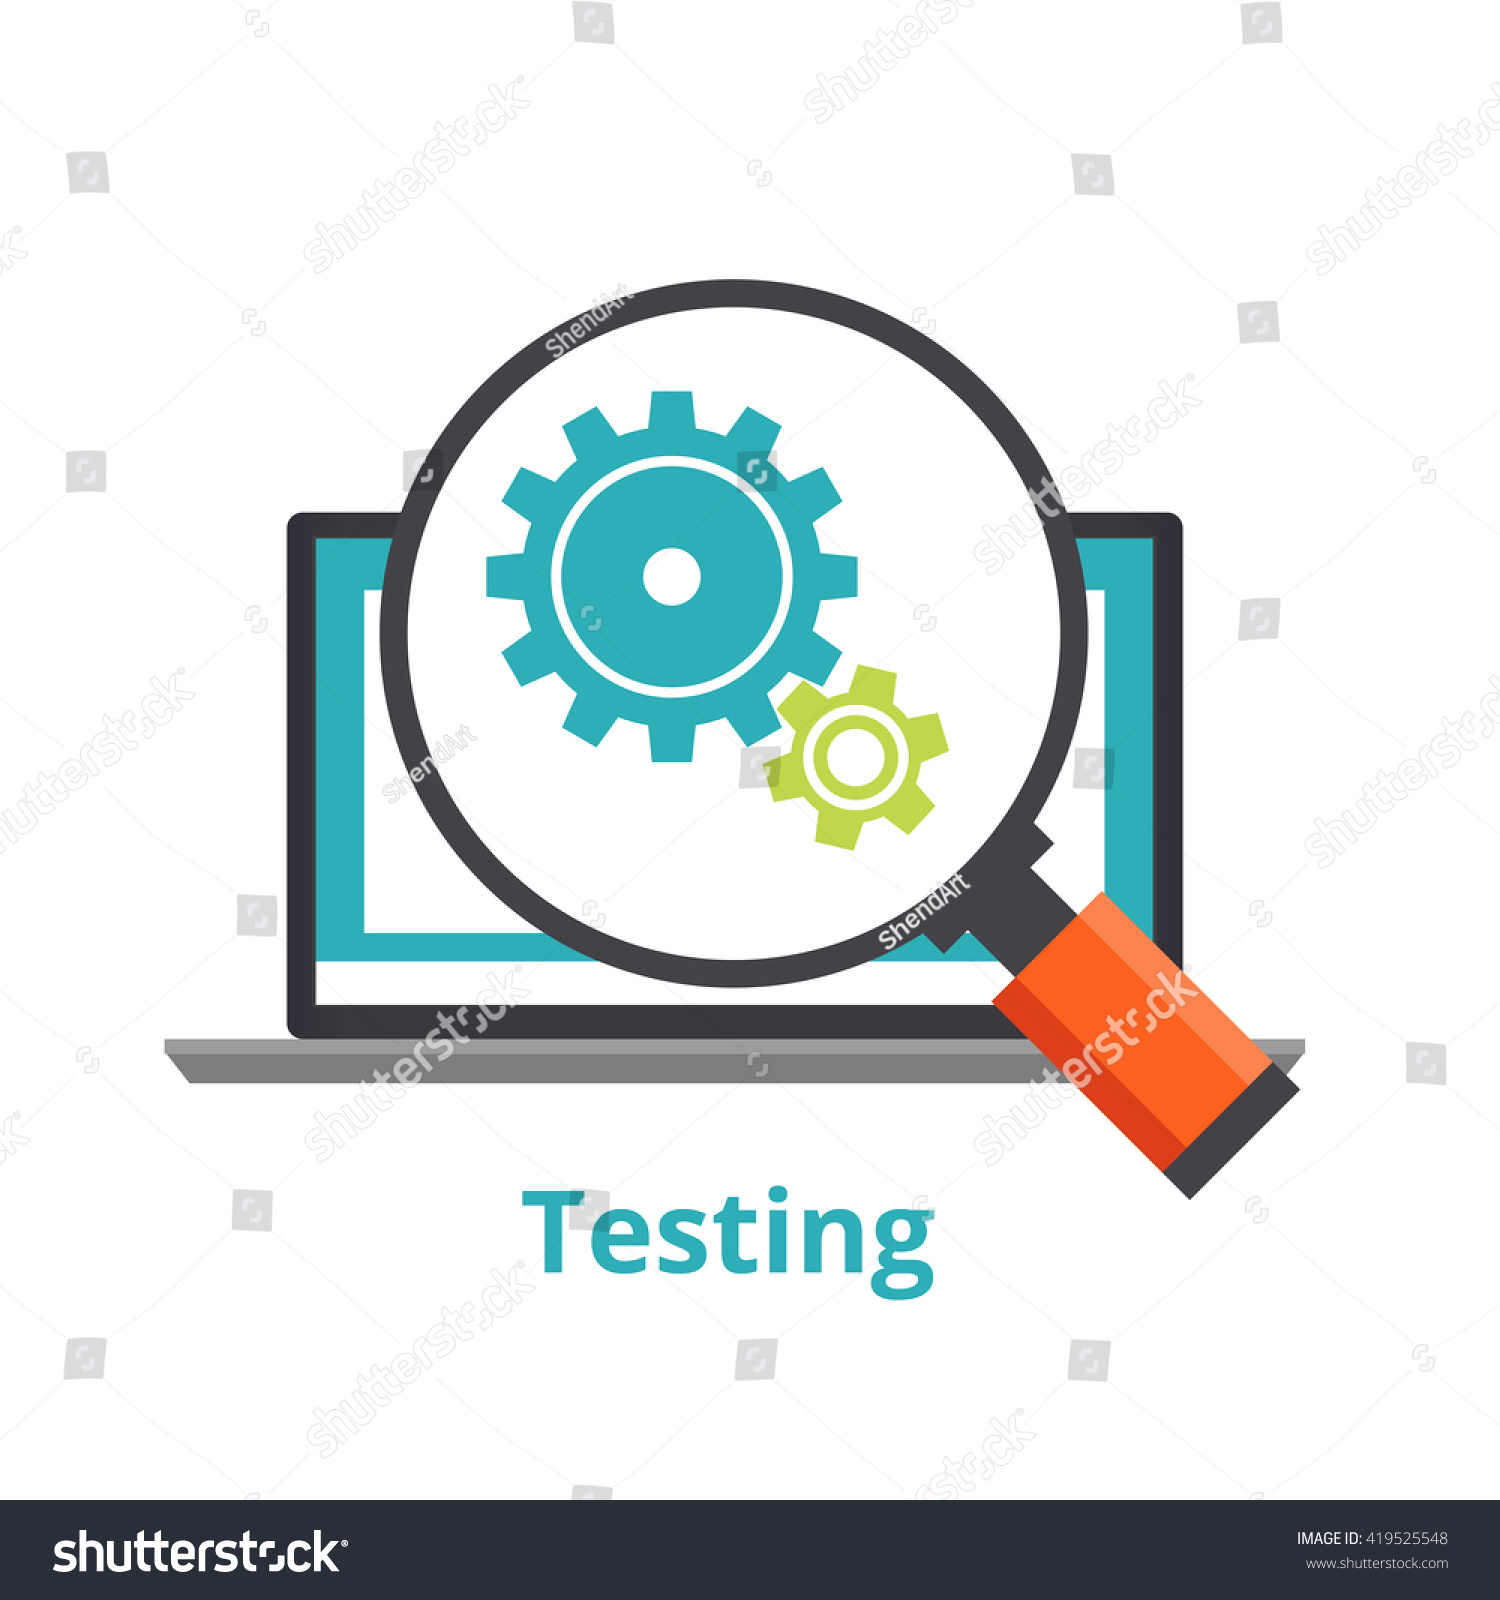 Application Programming Interface Testing